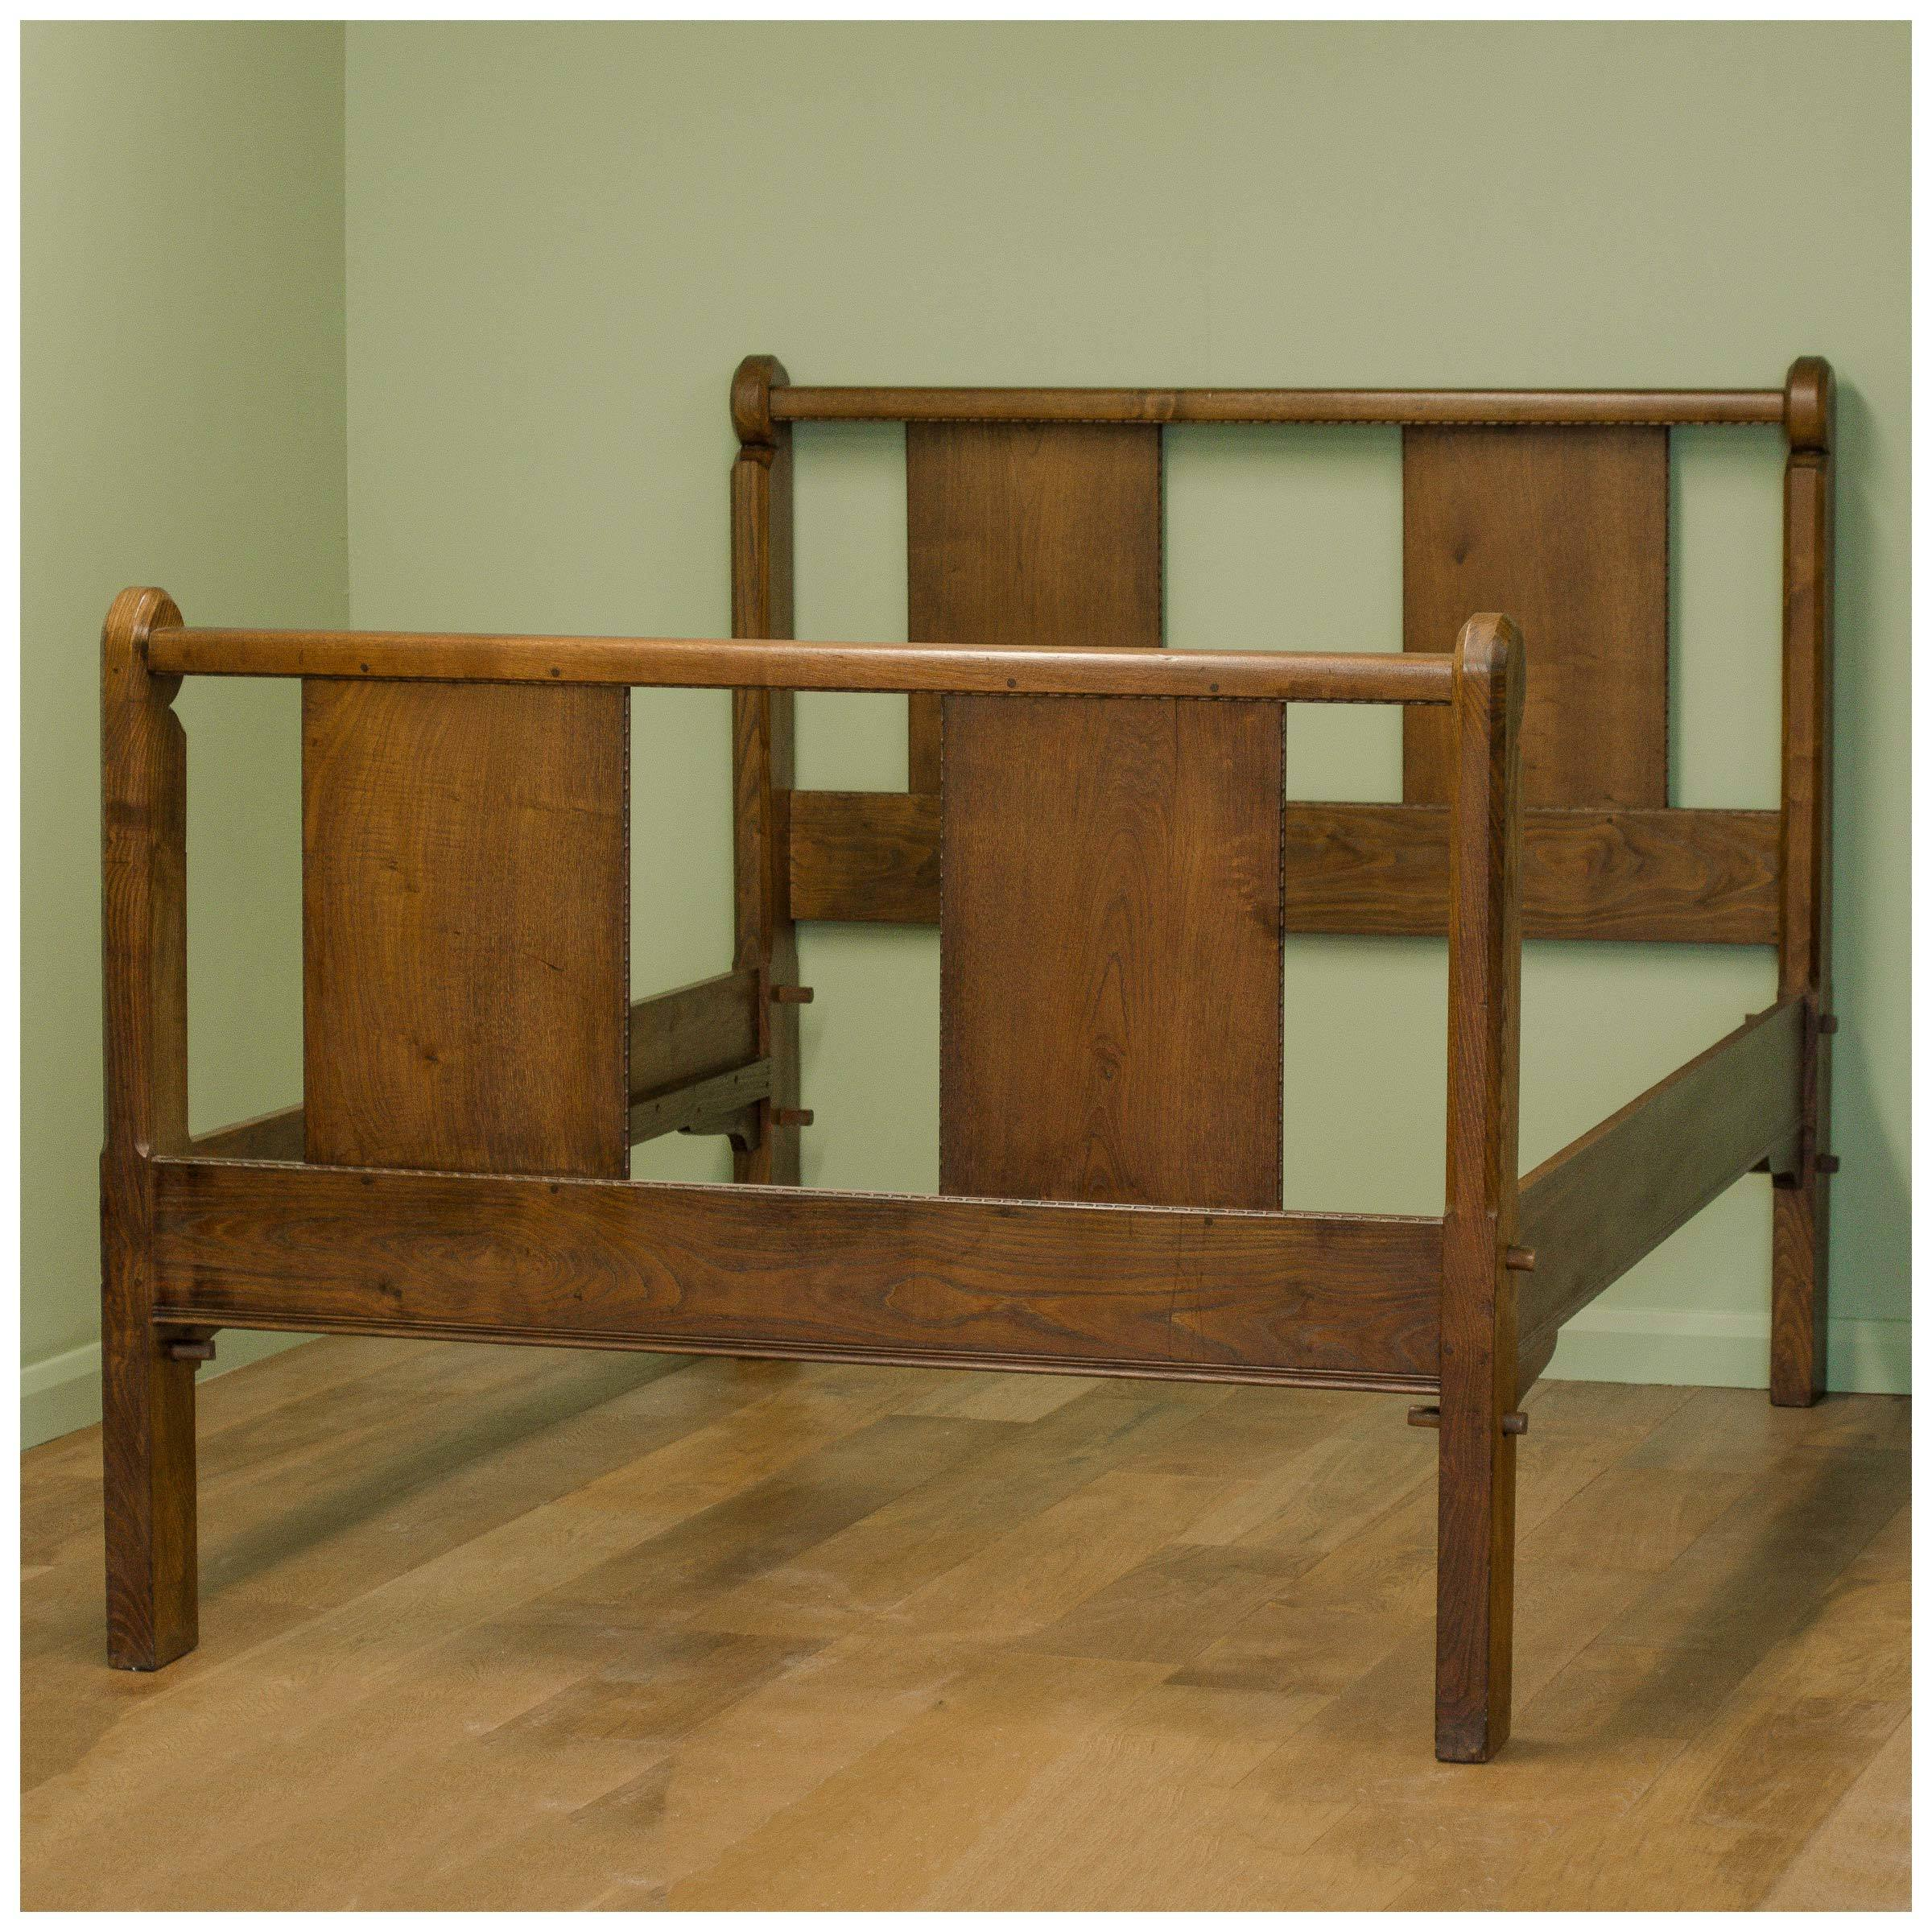 arts-crafts-walnut-double-bed-attributed-to-ernest-william-gimson-b0020101a.jpg